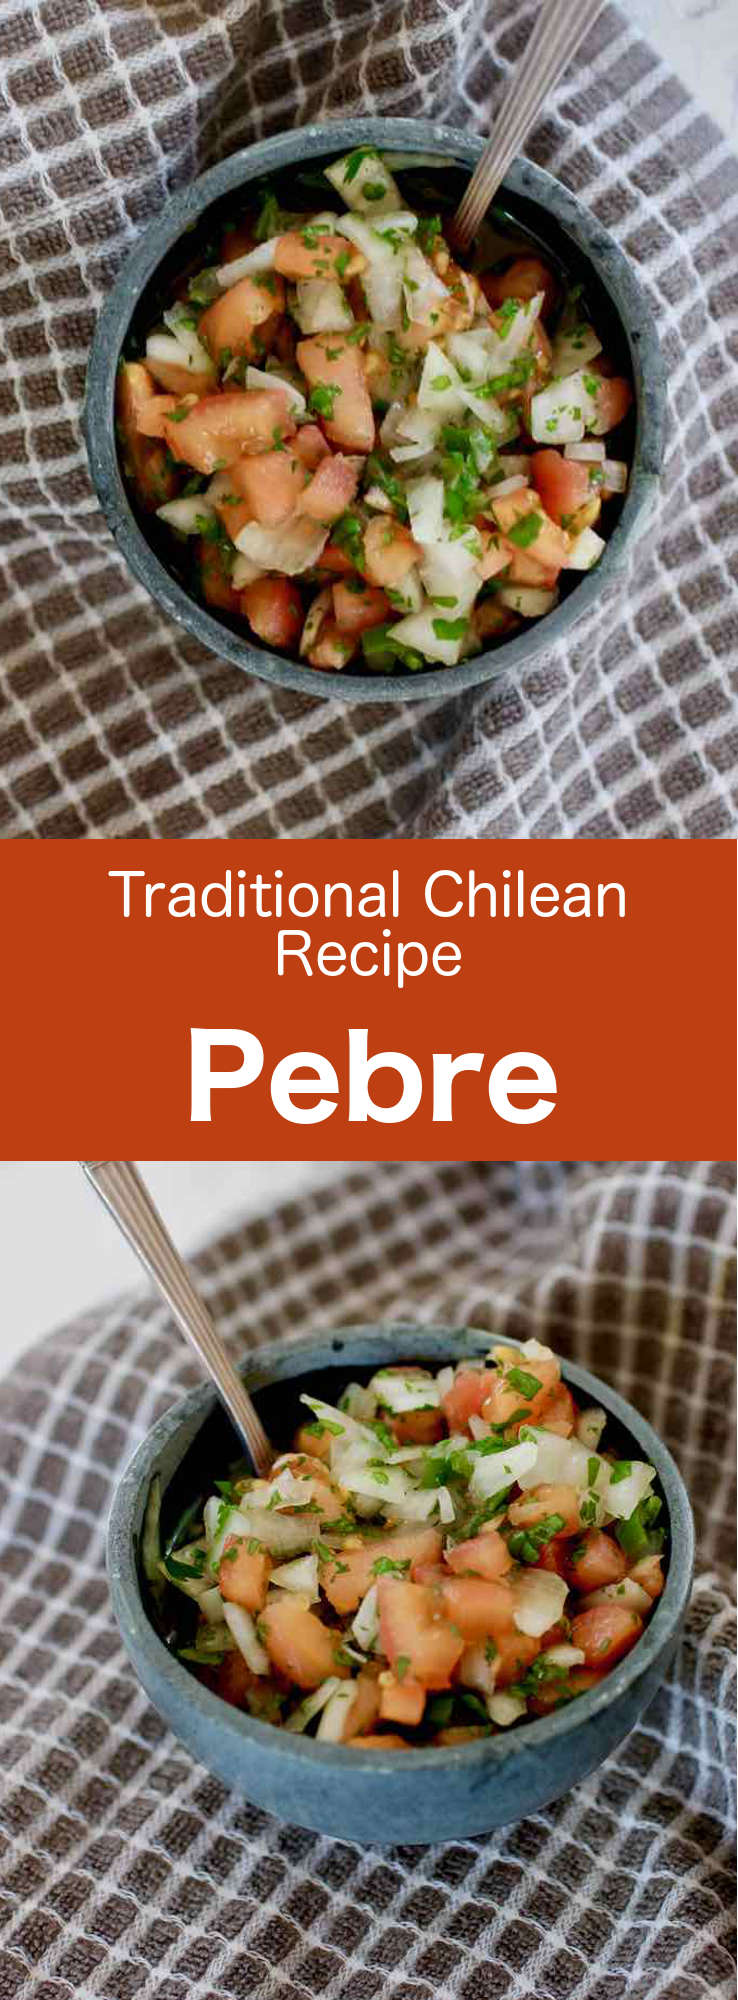 Pebre is a Chilean condiment prepared with cilantro, chopped onion, olive oil, garlic and spicy aji pepper paste, as well as chopped tomatoes and diced green hot peppers. #Chile #ChileanCuisine #ChileanRecipe #ChileanFood #WorldCuisine #196flavors